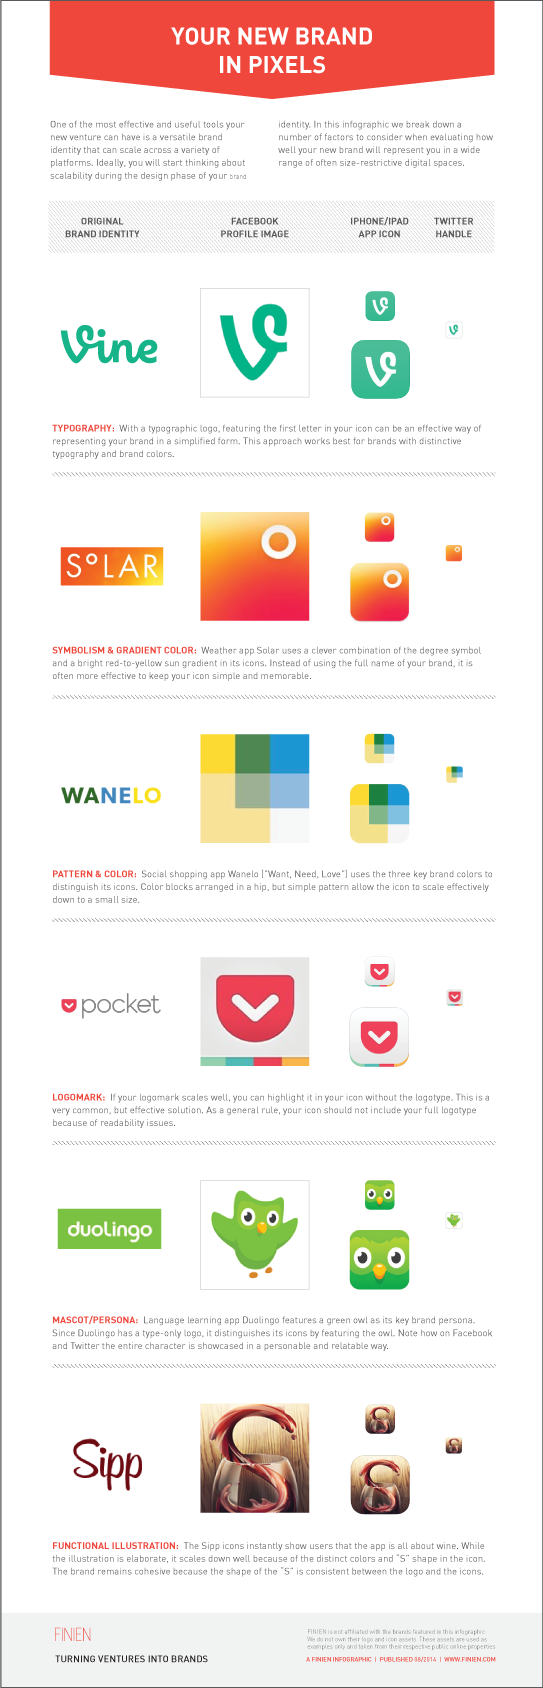 FINIEN_Infographic_Your_New_Brand_in_Pixels_THUMB